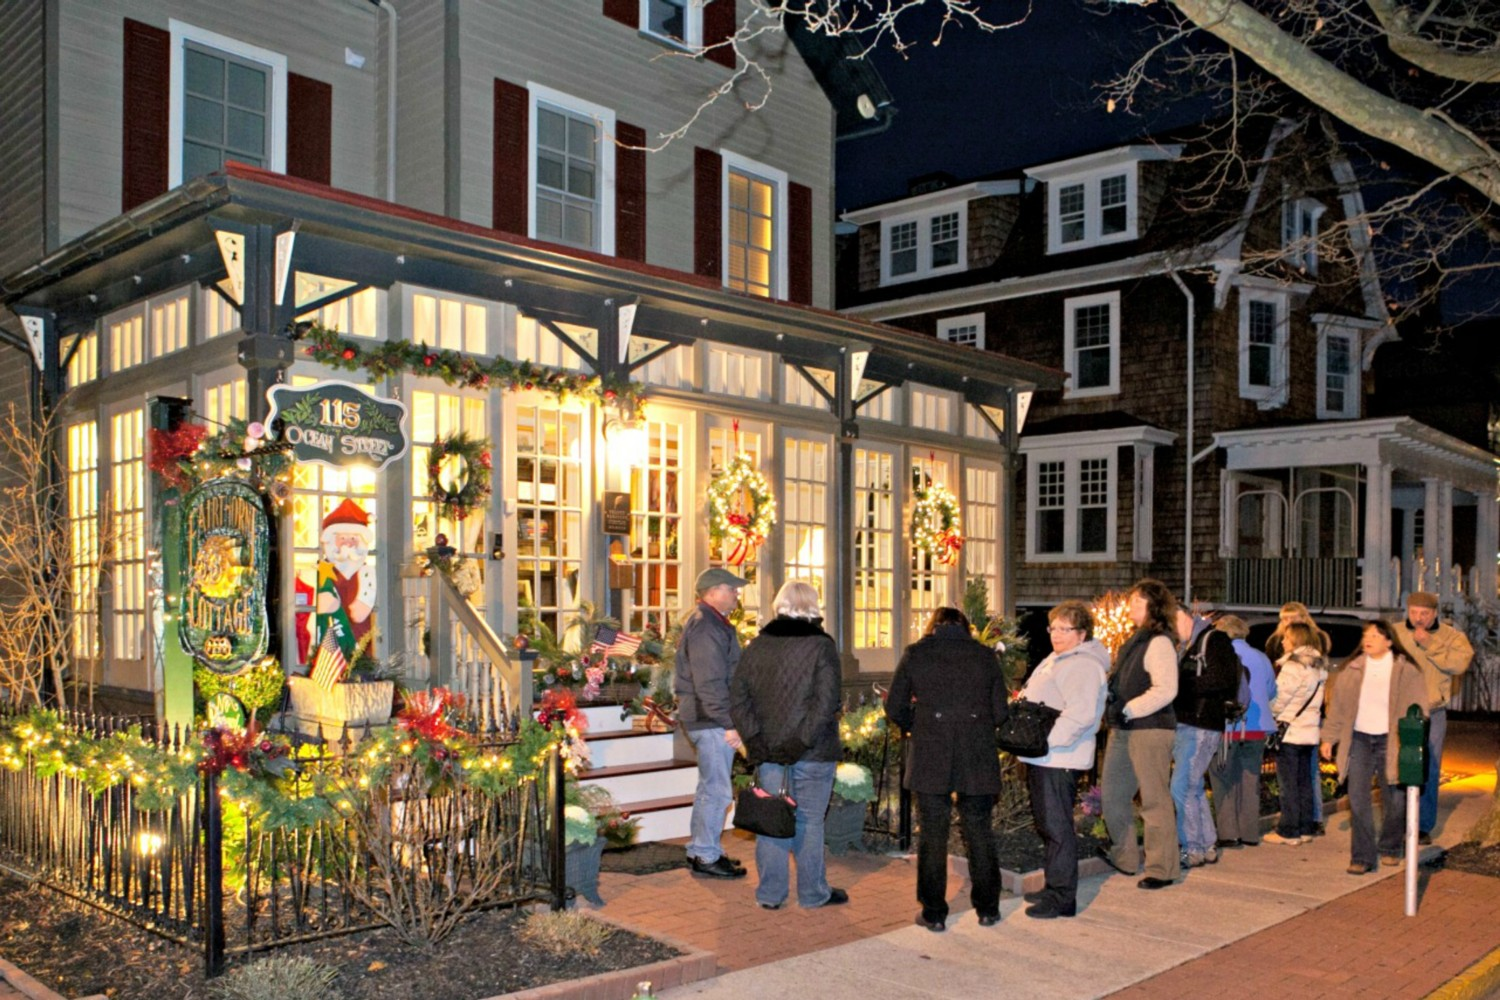 41st cape may christmas candlelight house tour taking place dec 6 13